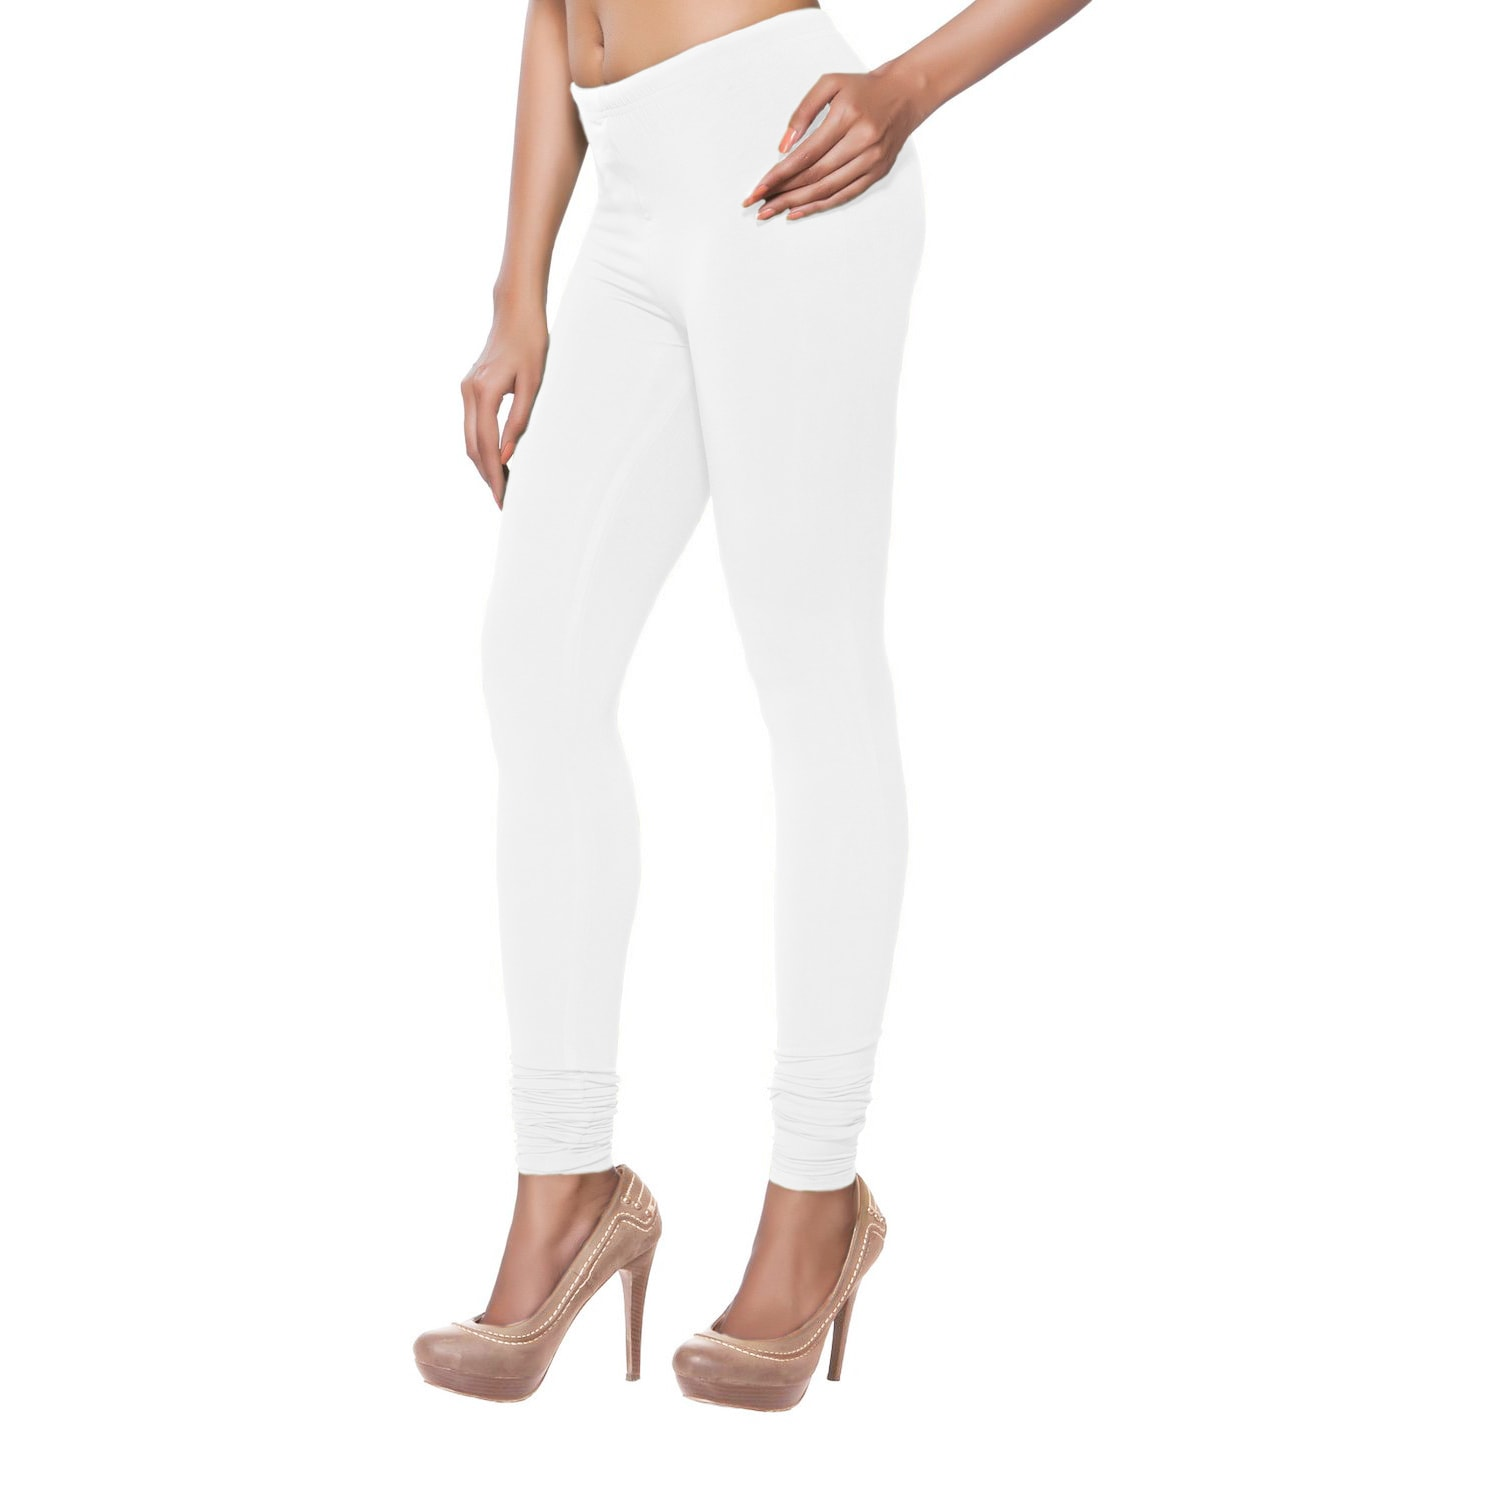 In-Sattva Women's White Solid Color Leggings (India) (Whi...